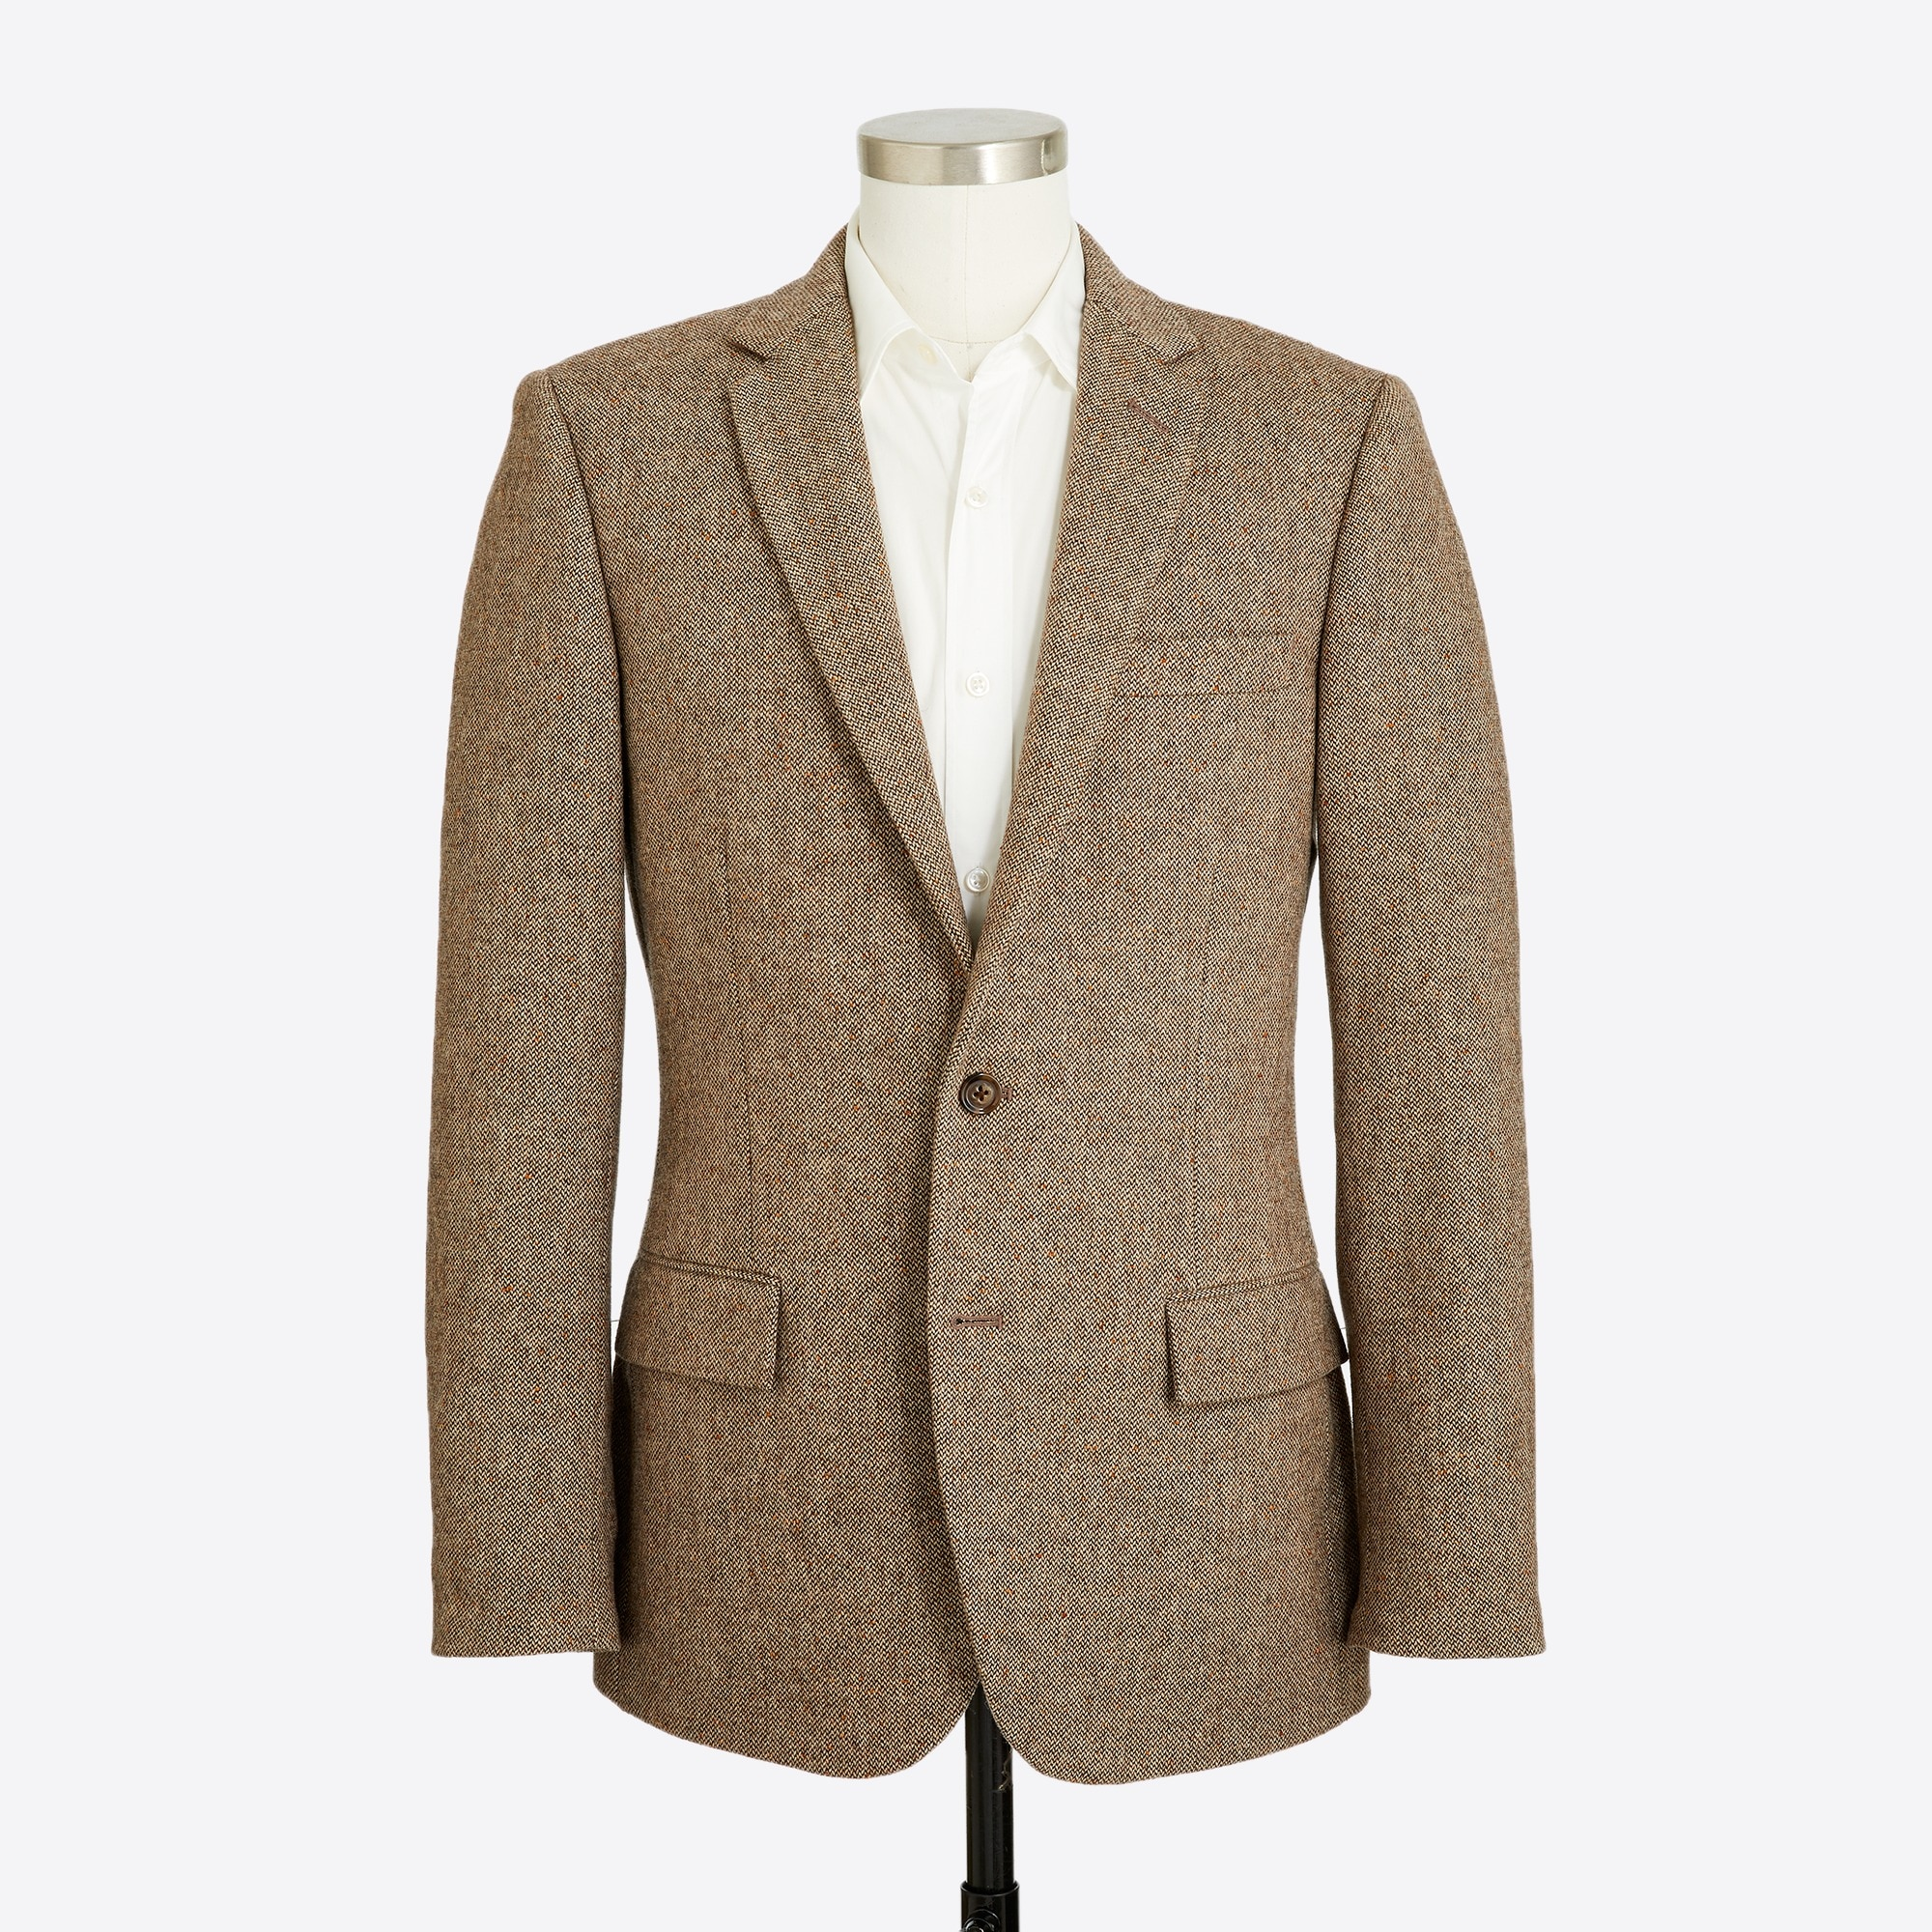 Thompson suit jacket in bird's-eye wool